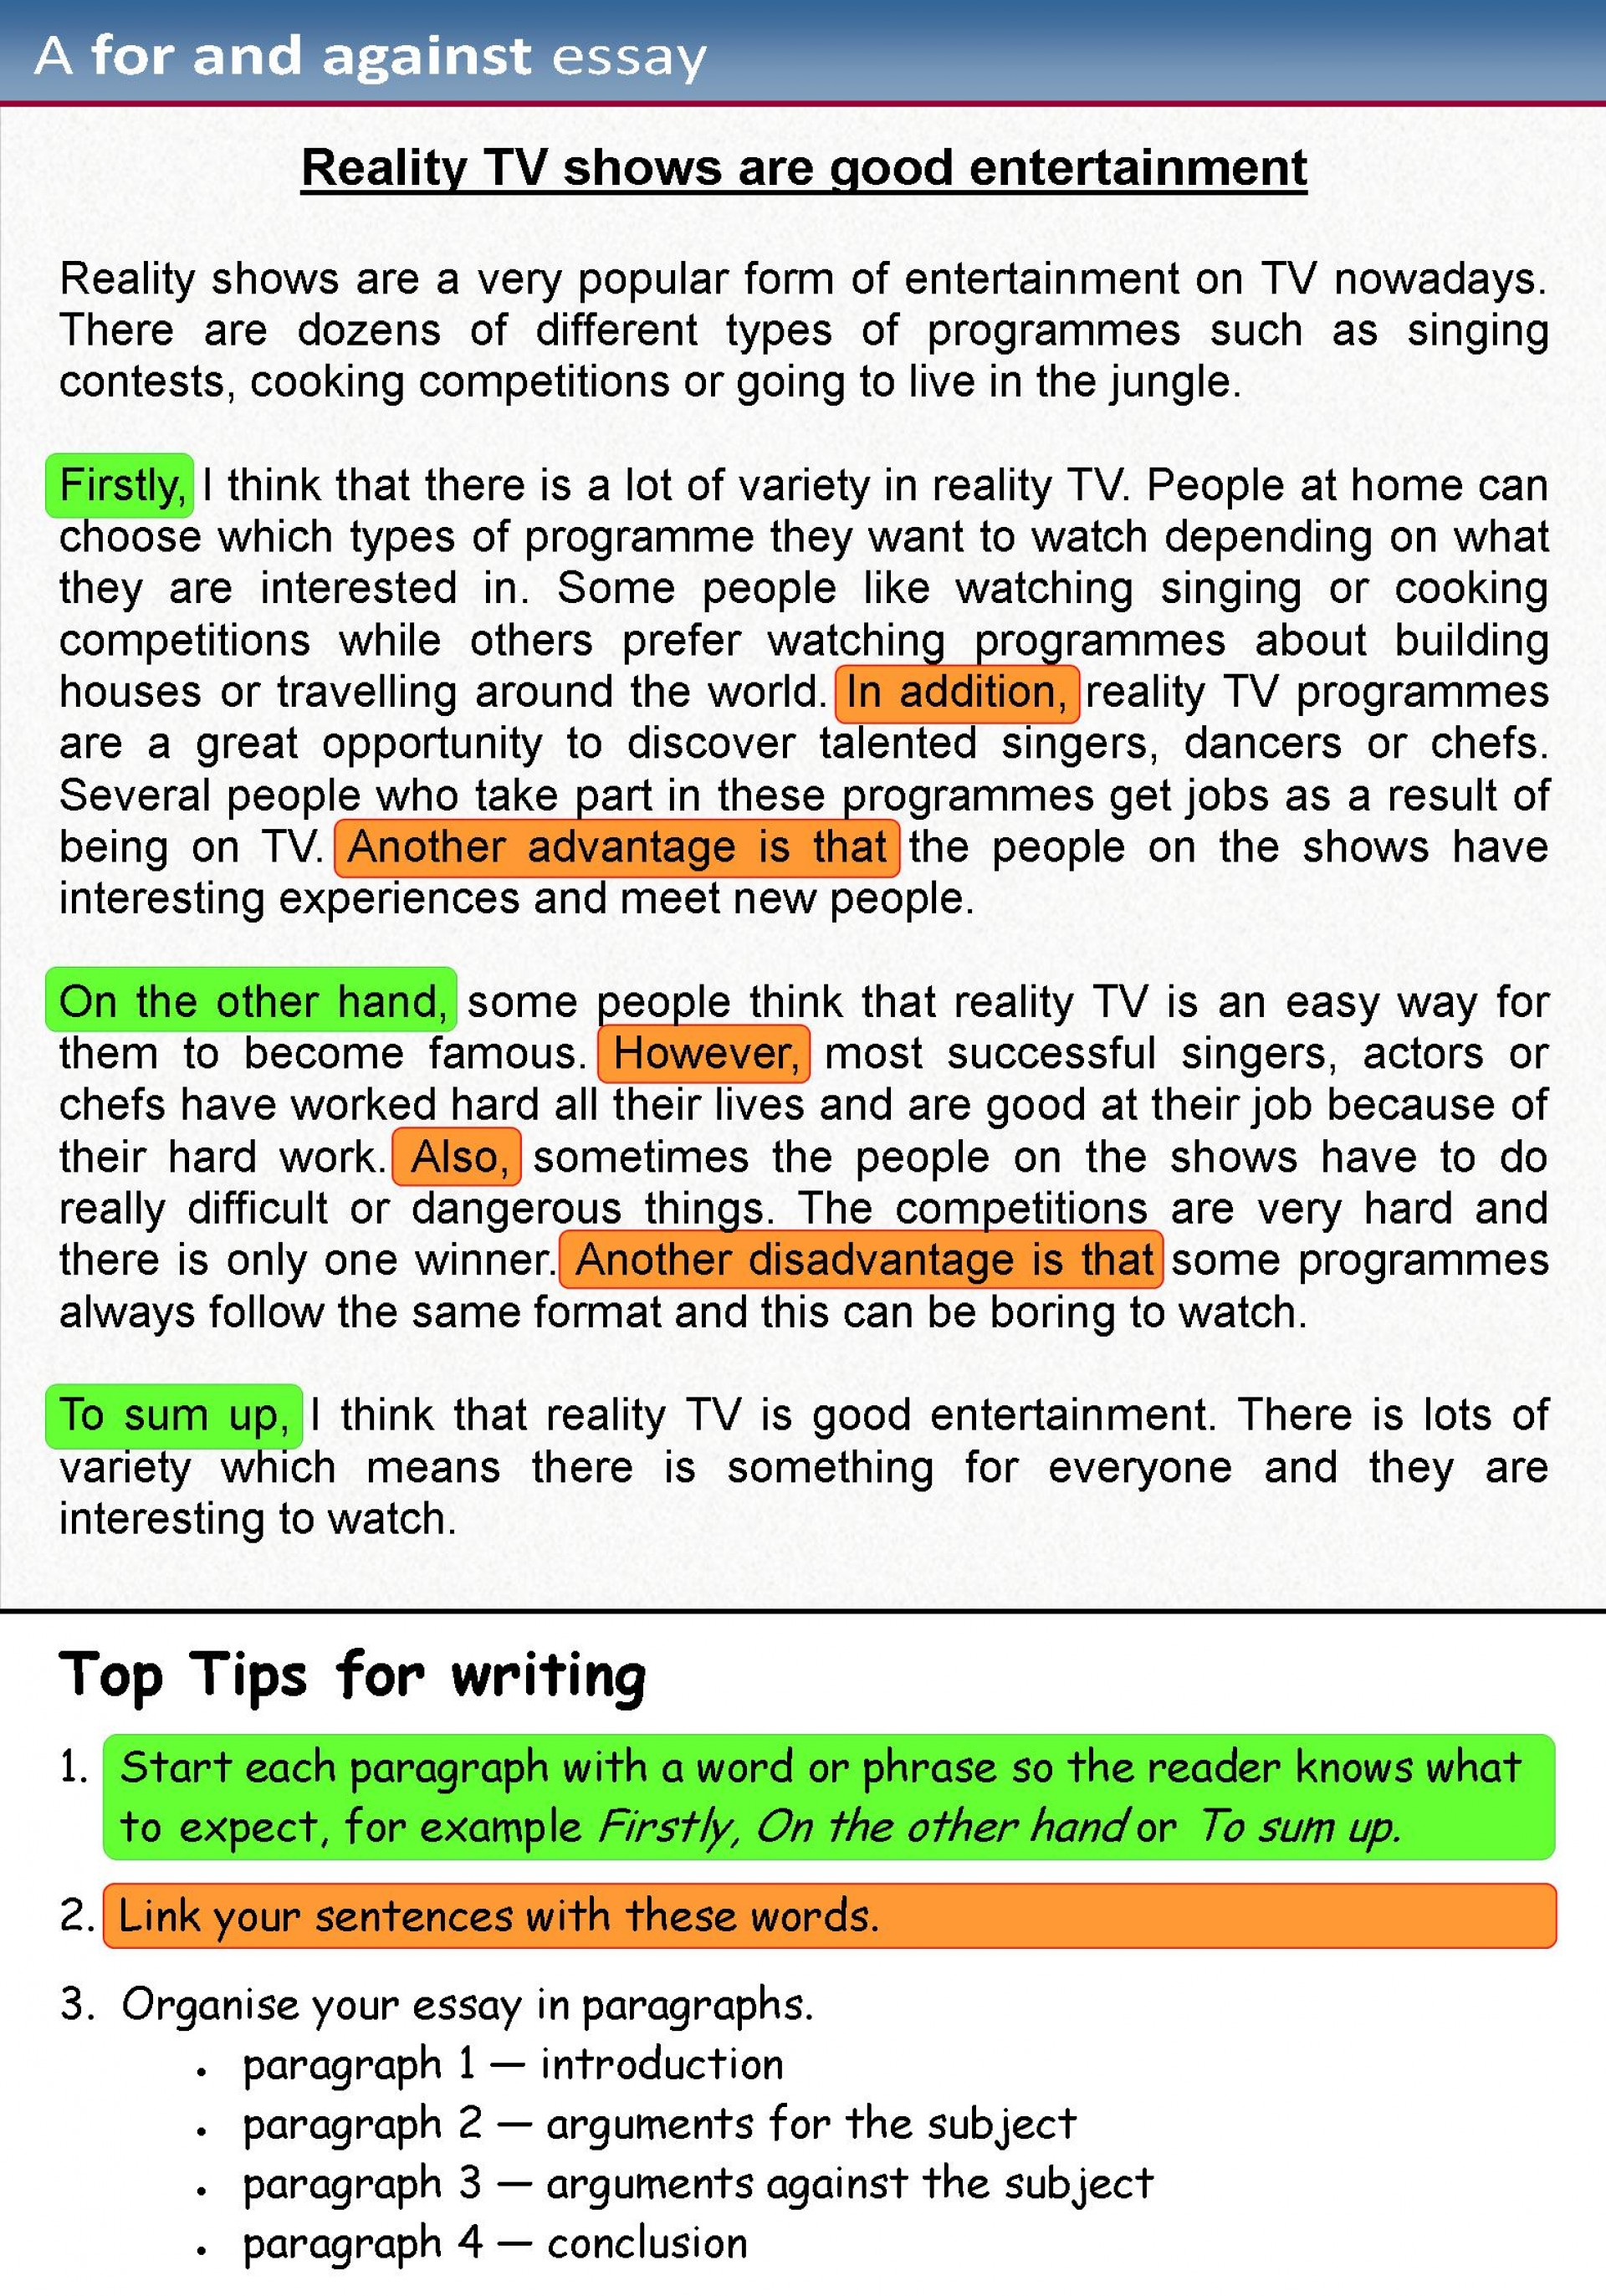 017 Grade English Essay Examples Example For Against 1 Wonderful 12 Narrative Provincial Exam Sample Manitoba 1920